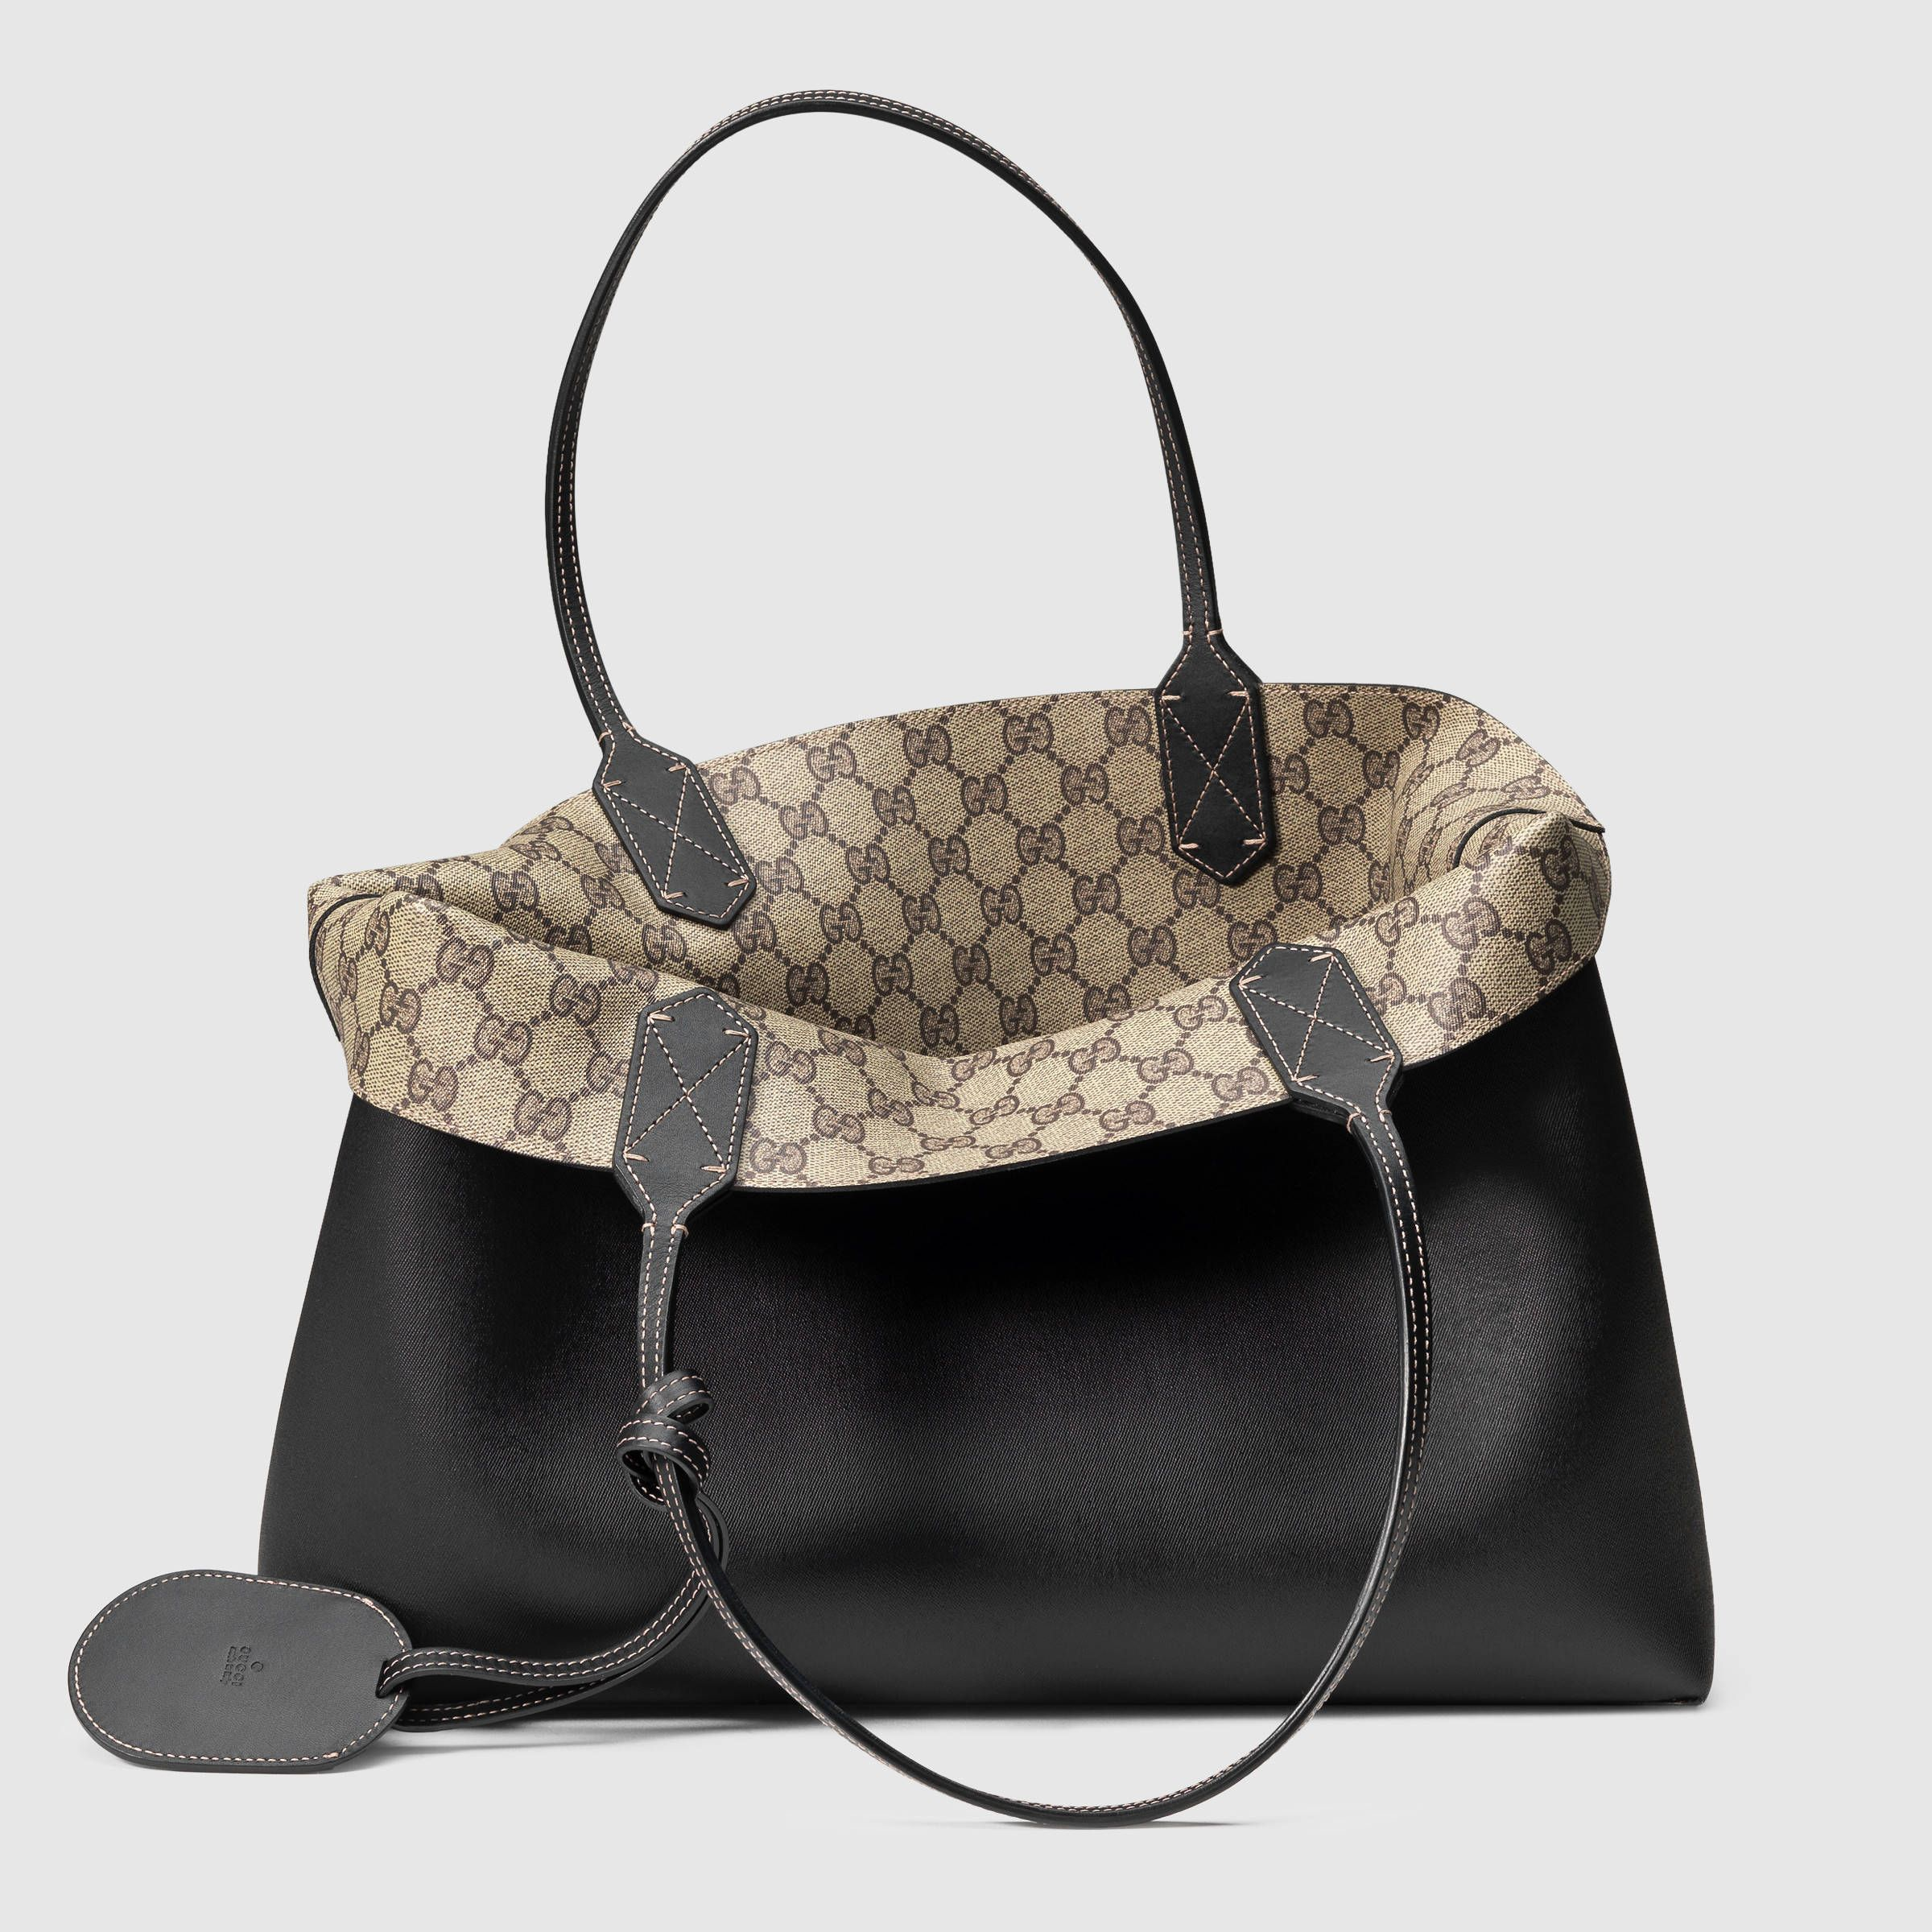 a31877b6bfbb Reversible GG medium tote | Shelter the Body | Bags, Gucci tote bag ...